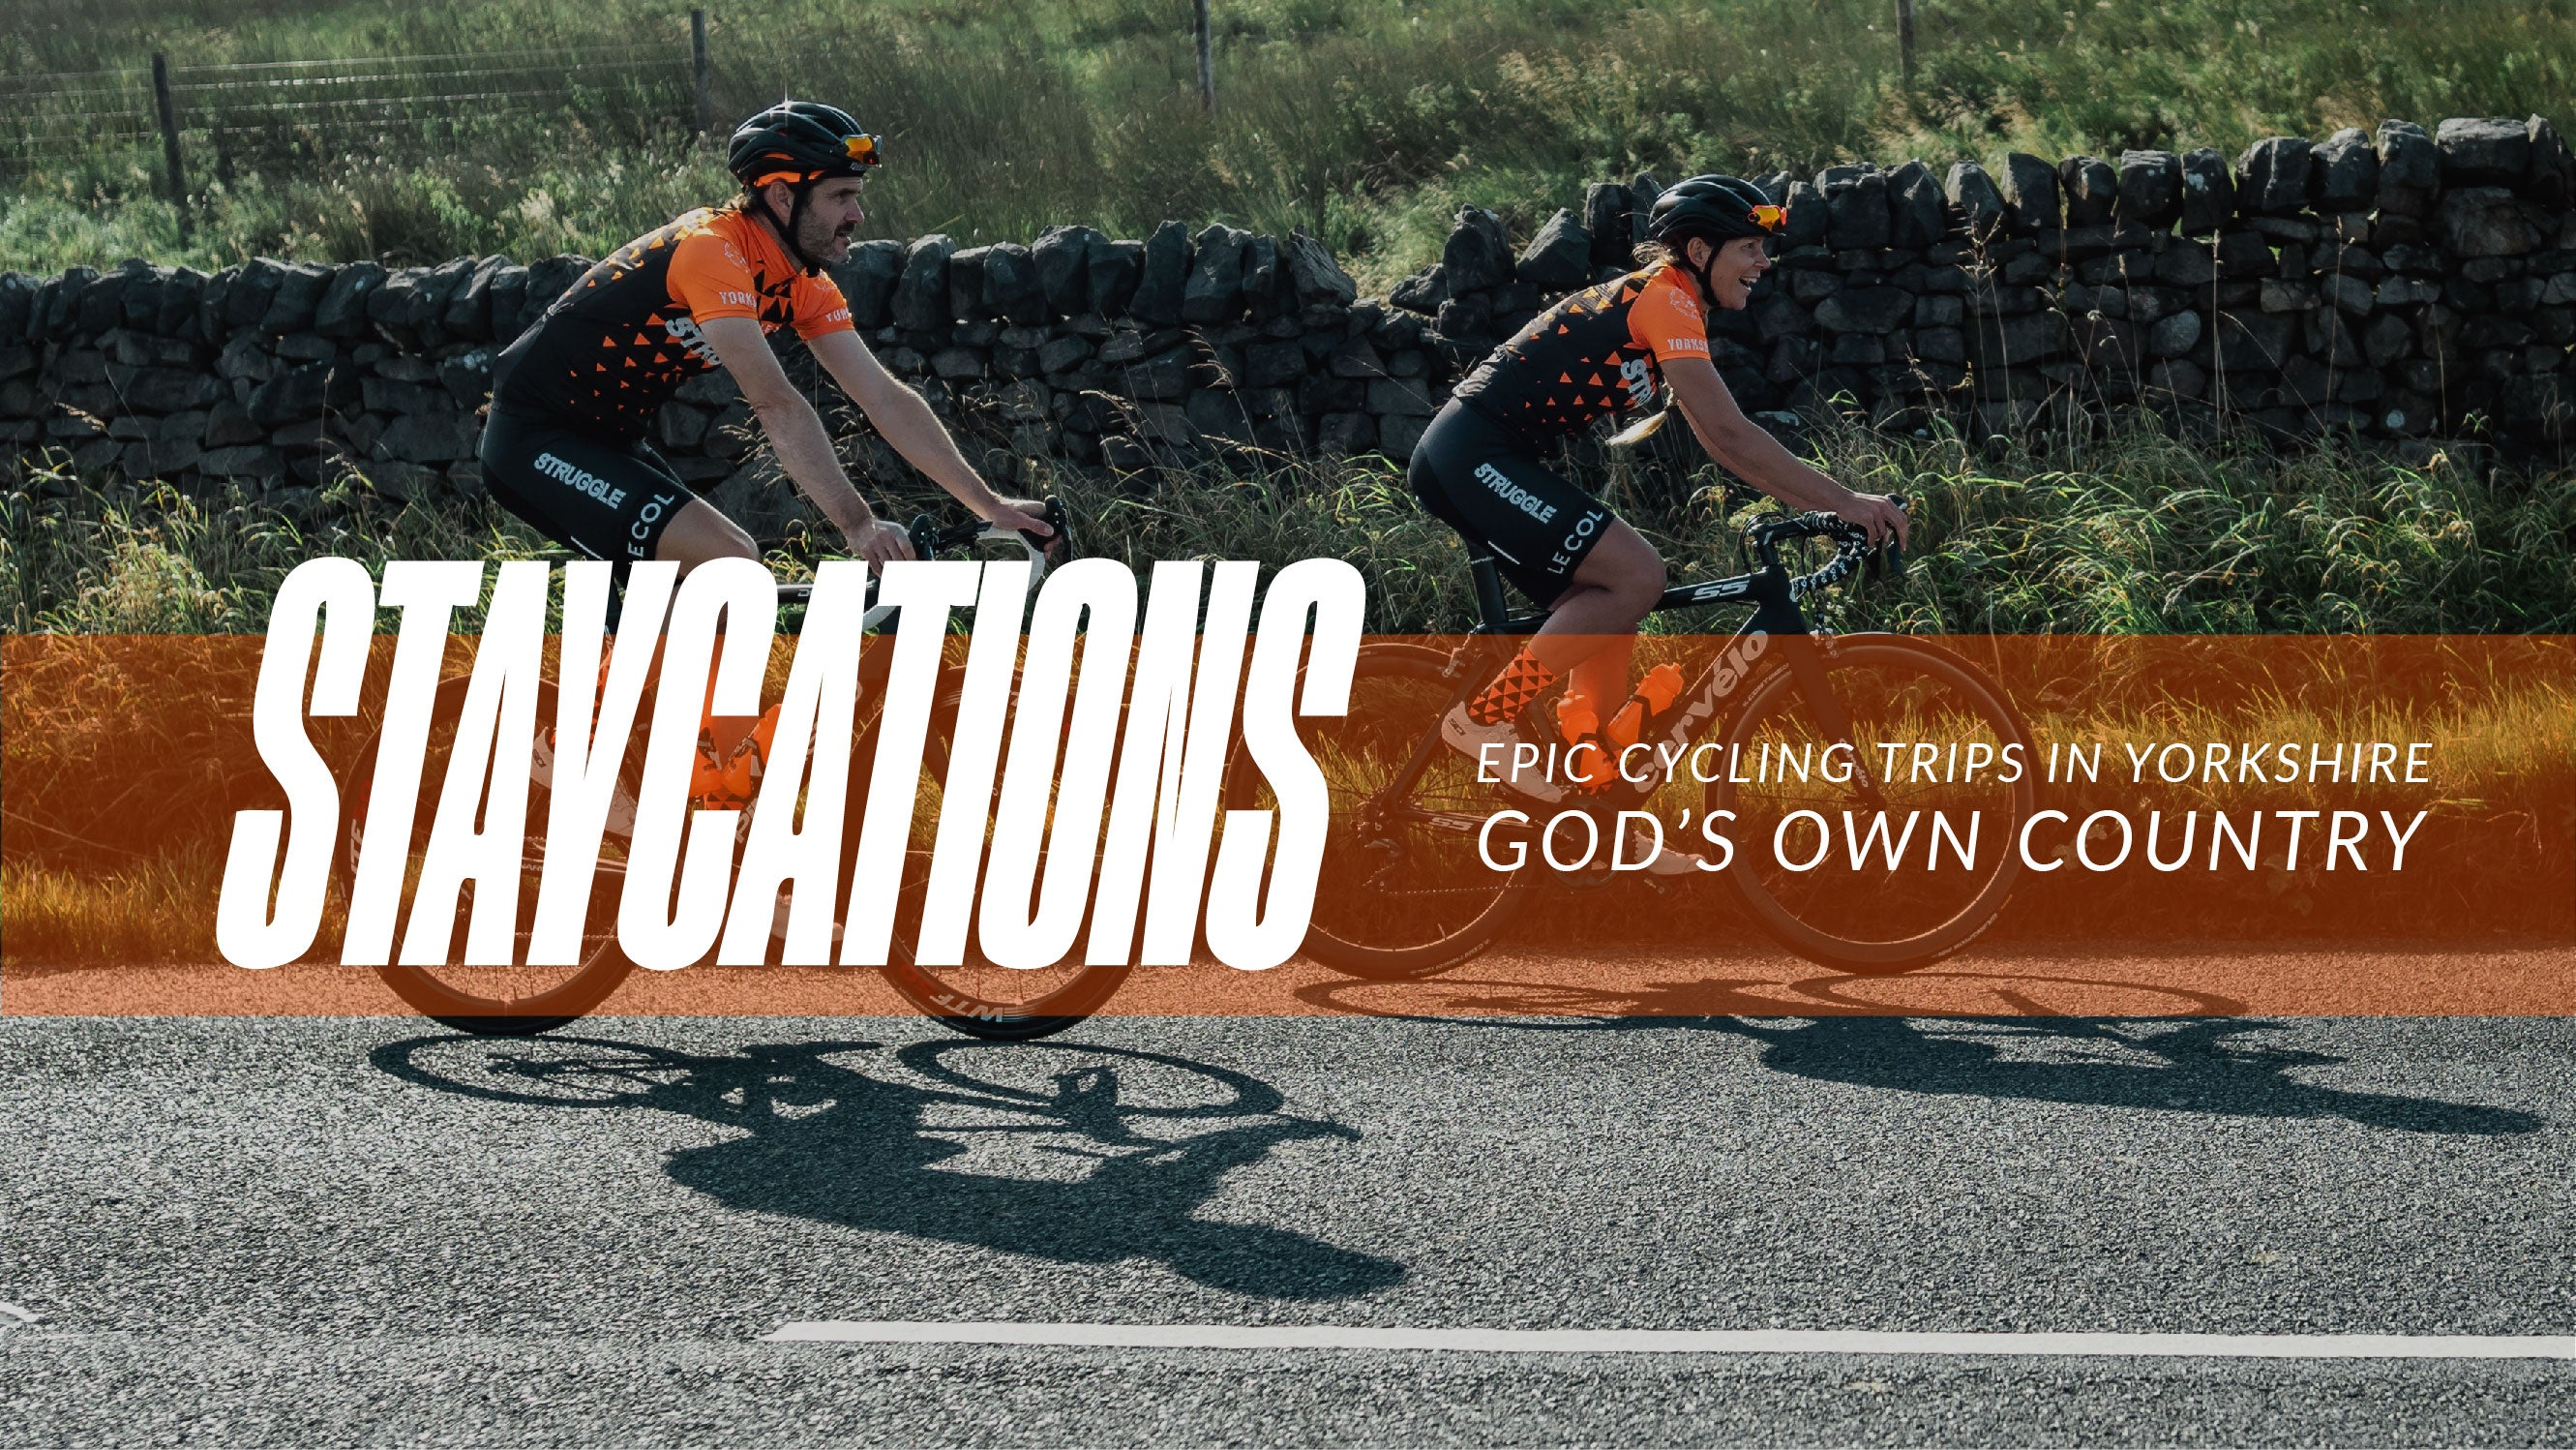 Cycling staycations in Yorkshire UK